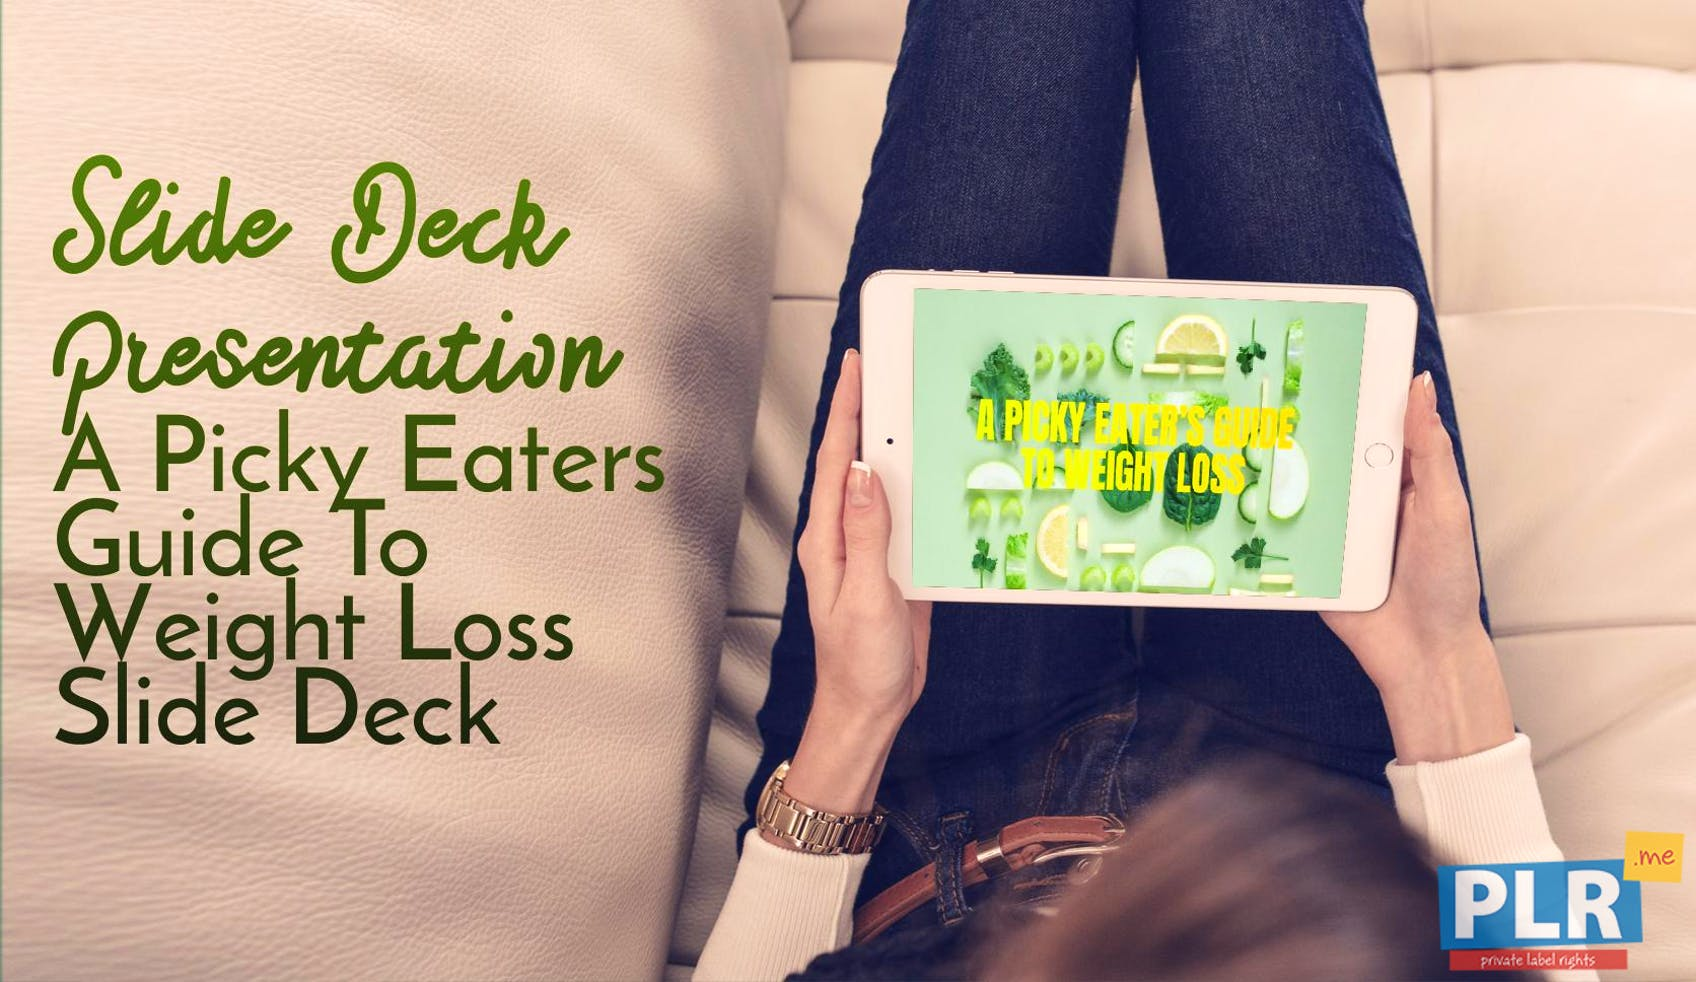 A Picky Eaters Guide To Weight Loss Slide Deck